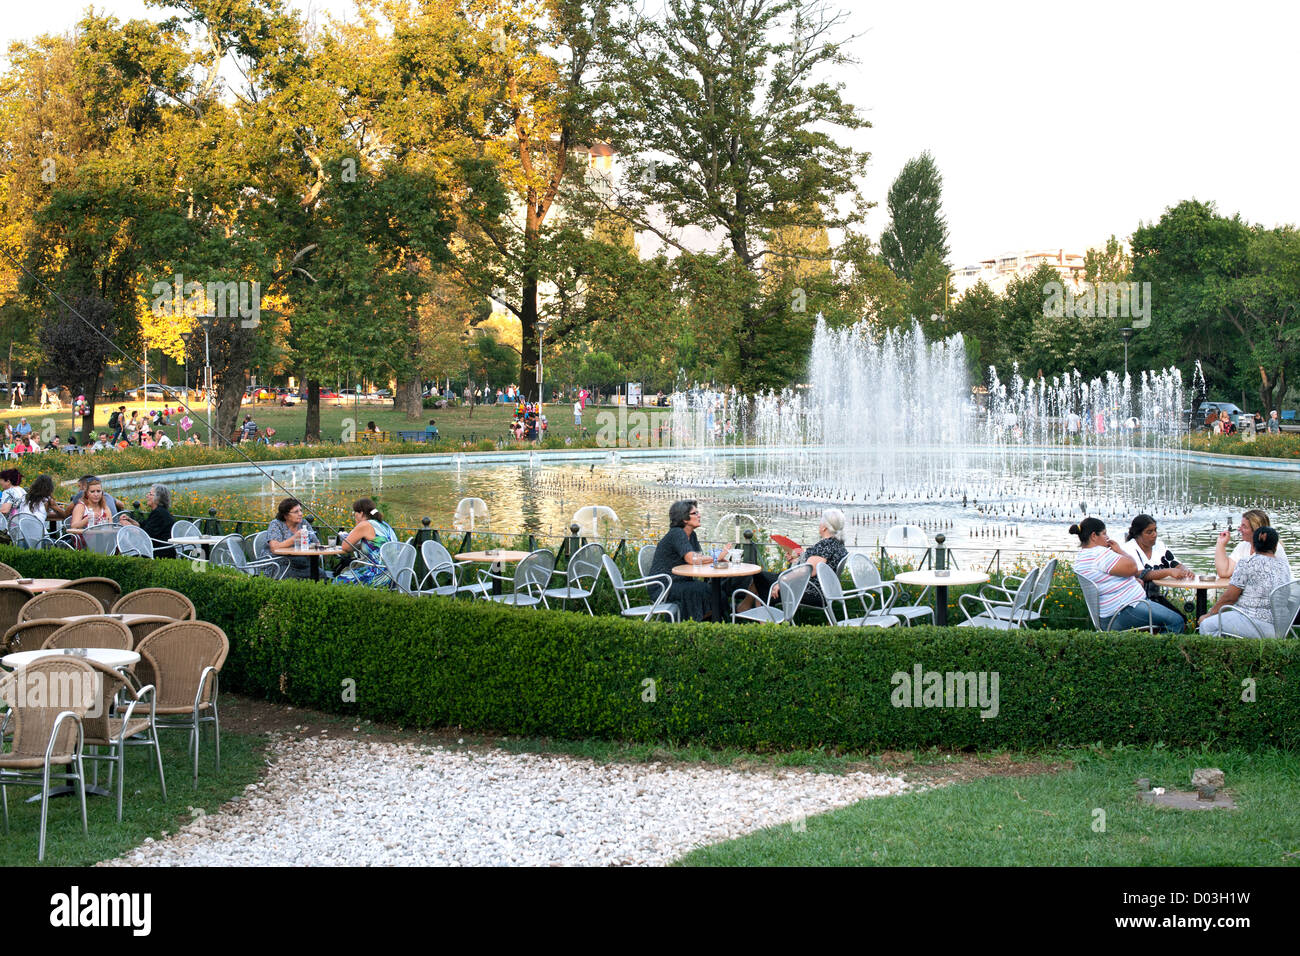 Rinia park and fountains in central Tirana, the capital of Albania. - Stock Image